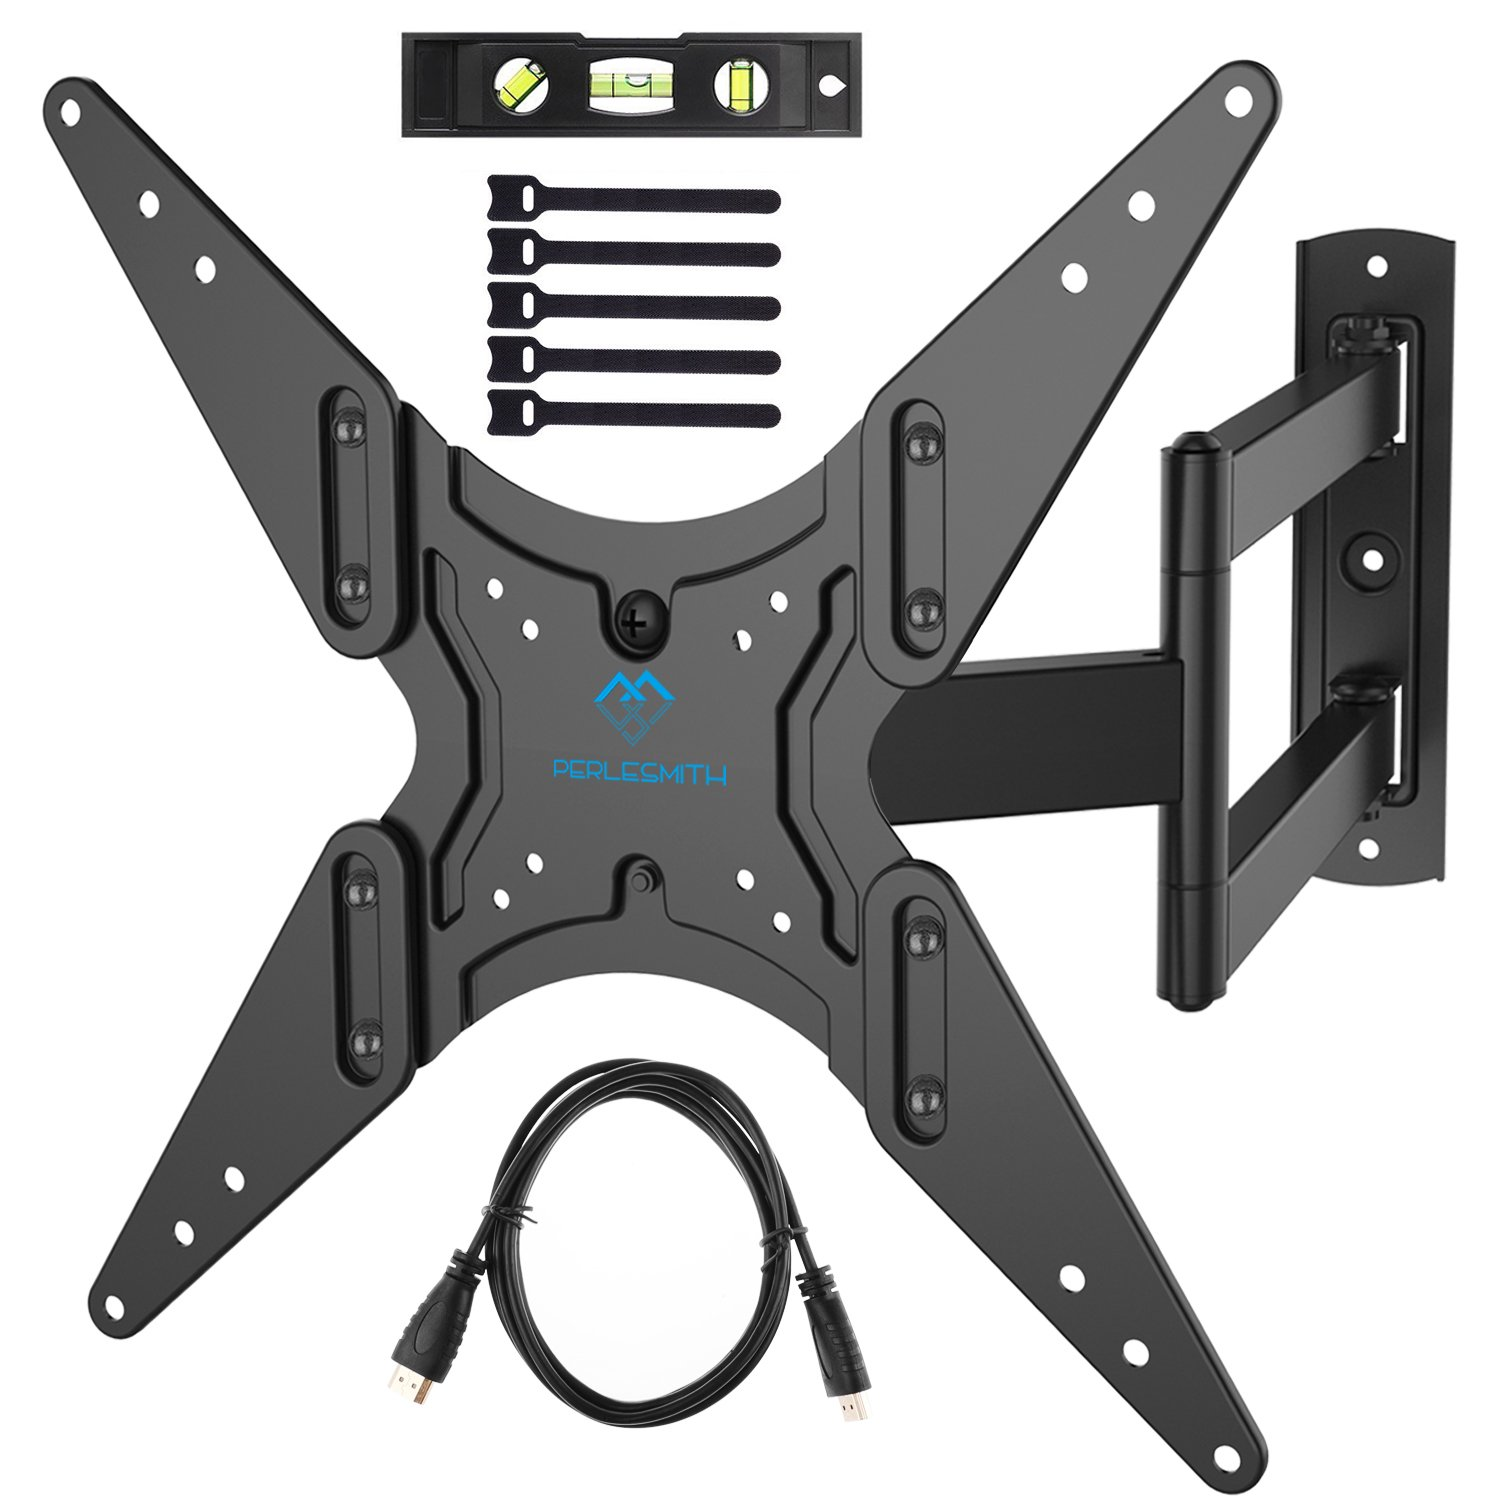 "PERLESMITH TV Wall Mount for 23-60""TVs with Swivel & Extends 18.5""- Wall Mount TV Bracket VESA 400x400 fits LED, LCD, OLED Flat Screen TVs up to 99 lbs - with HDMI Cable, Bubble Level & Cable Ties"